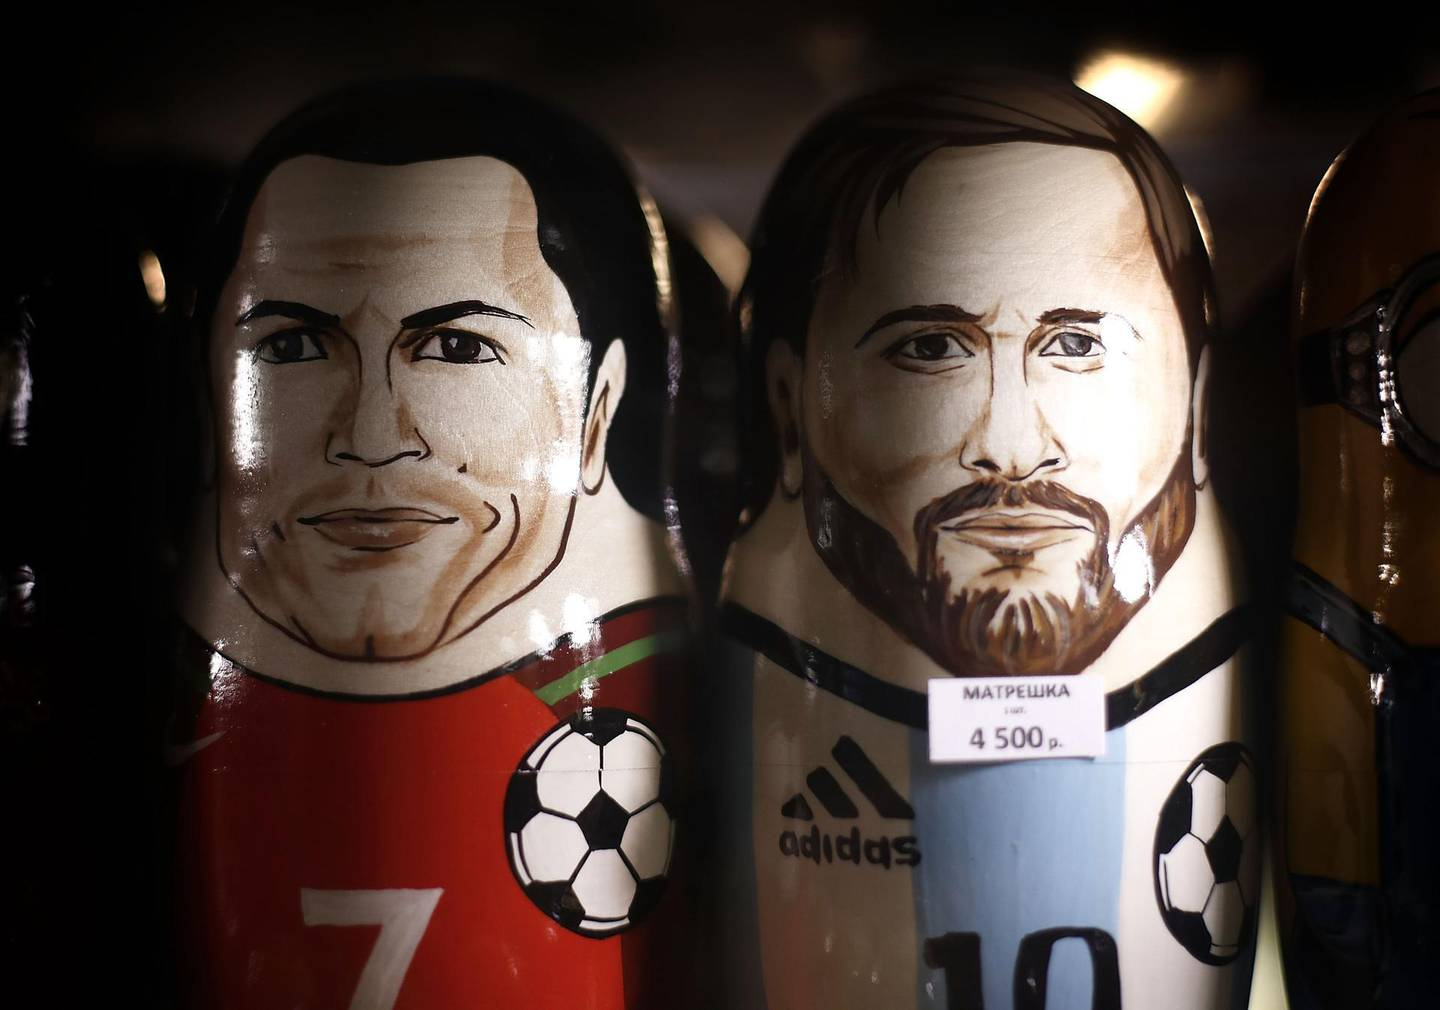 MOSCOW, RUSSIA - JUNE 08:  Russian Matryoshka dolls of Cristiano Ronaldo of Portugal and Lionel Messi of Argentina are seen in a souvenir souvenir shop ahead of the 2018 FIFA World Cup on June 8, 2018 in Moscow, Russia.  (Photo by Ryan Pierse/Getty Images)